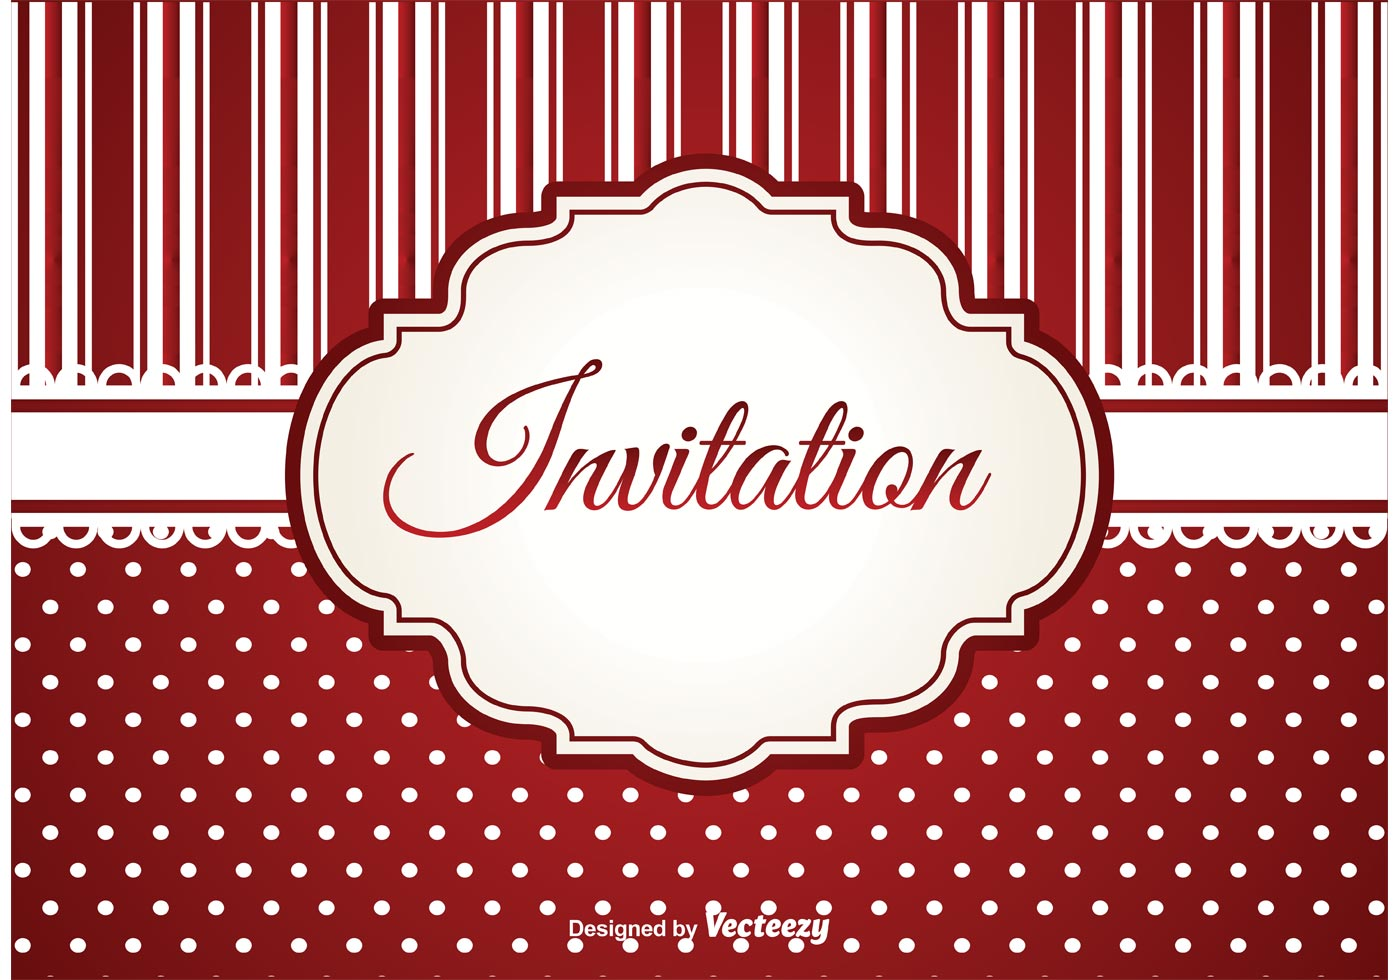 Invitation Template Free Vector Art - (25427 Free Downloads)